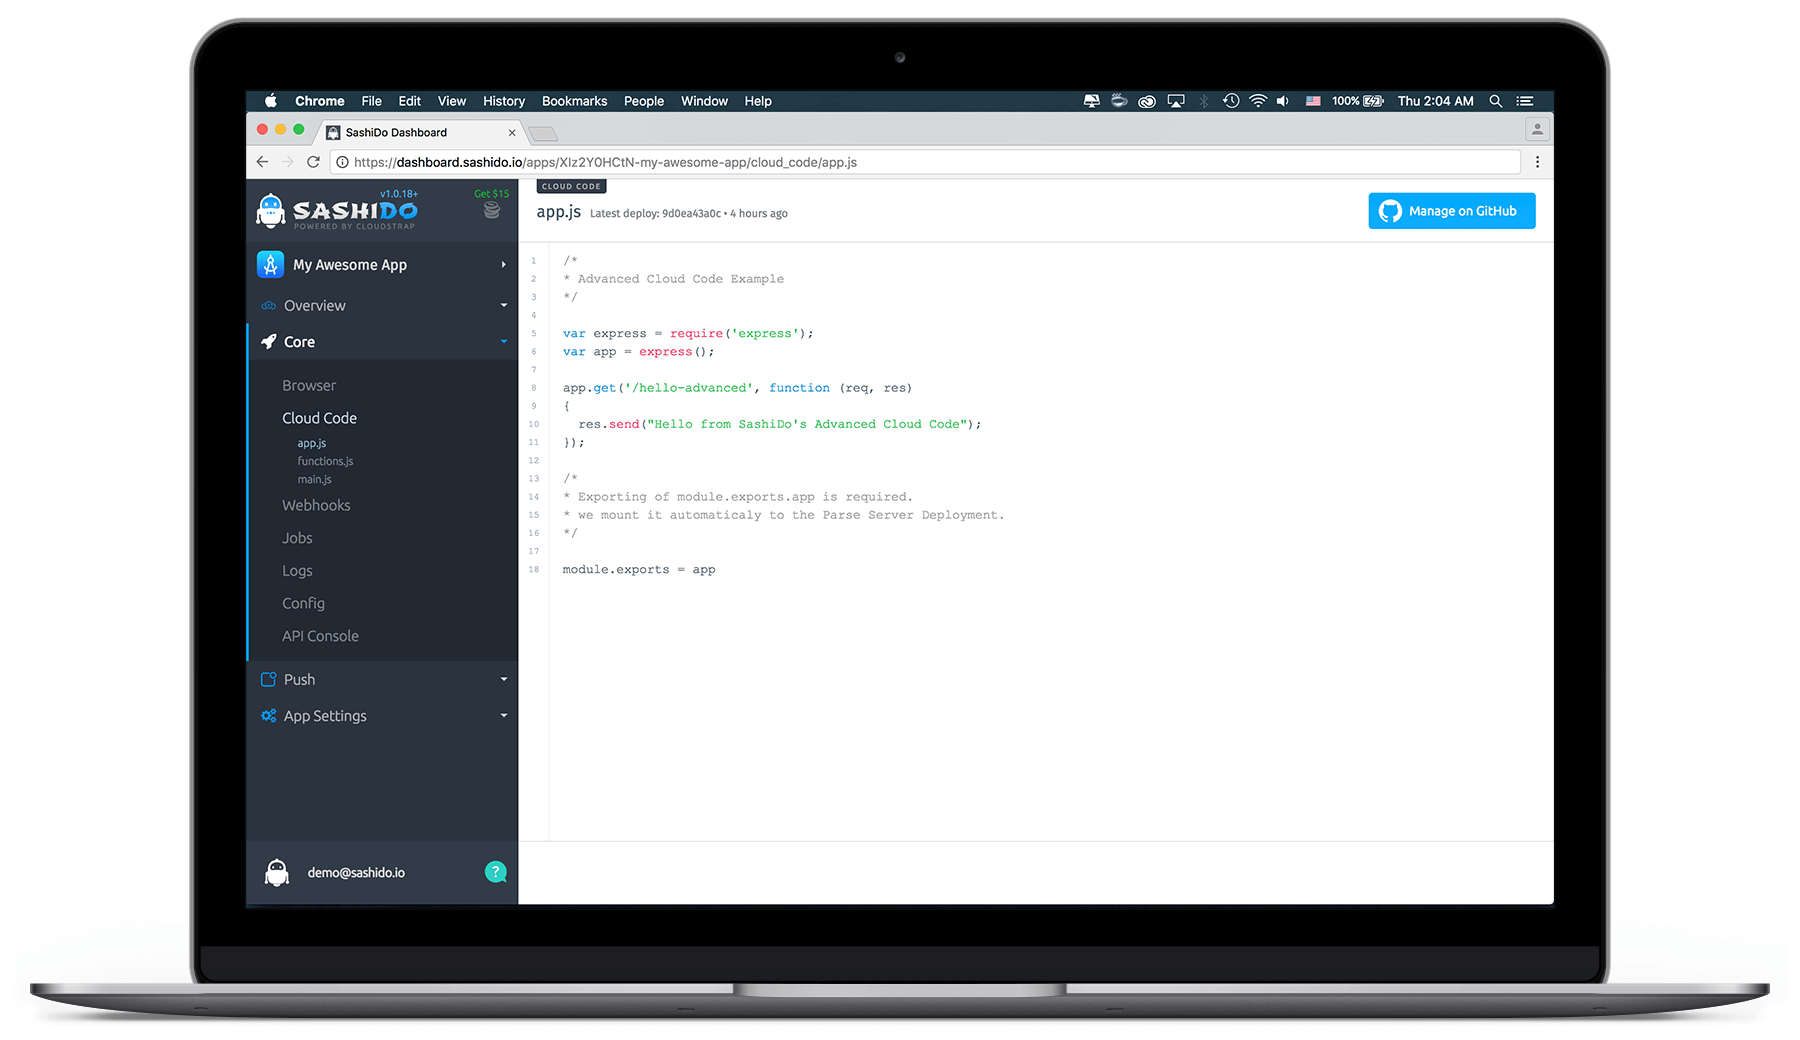 Cloud Code - Code Preview